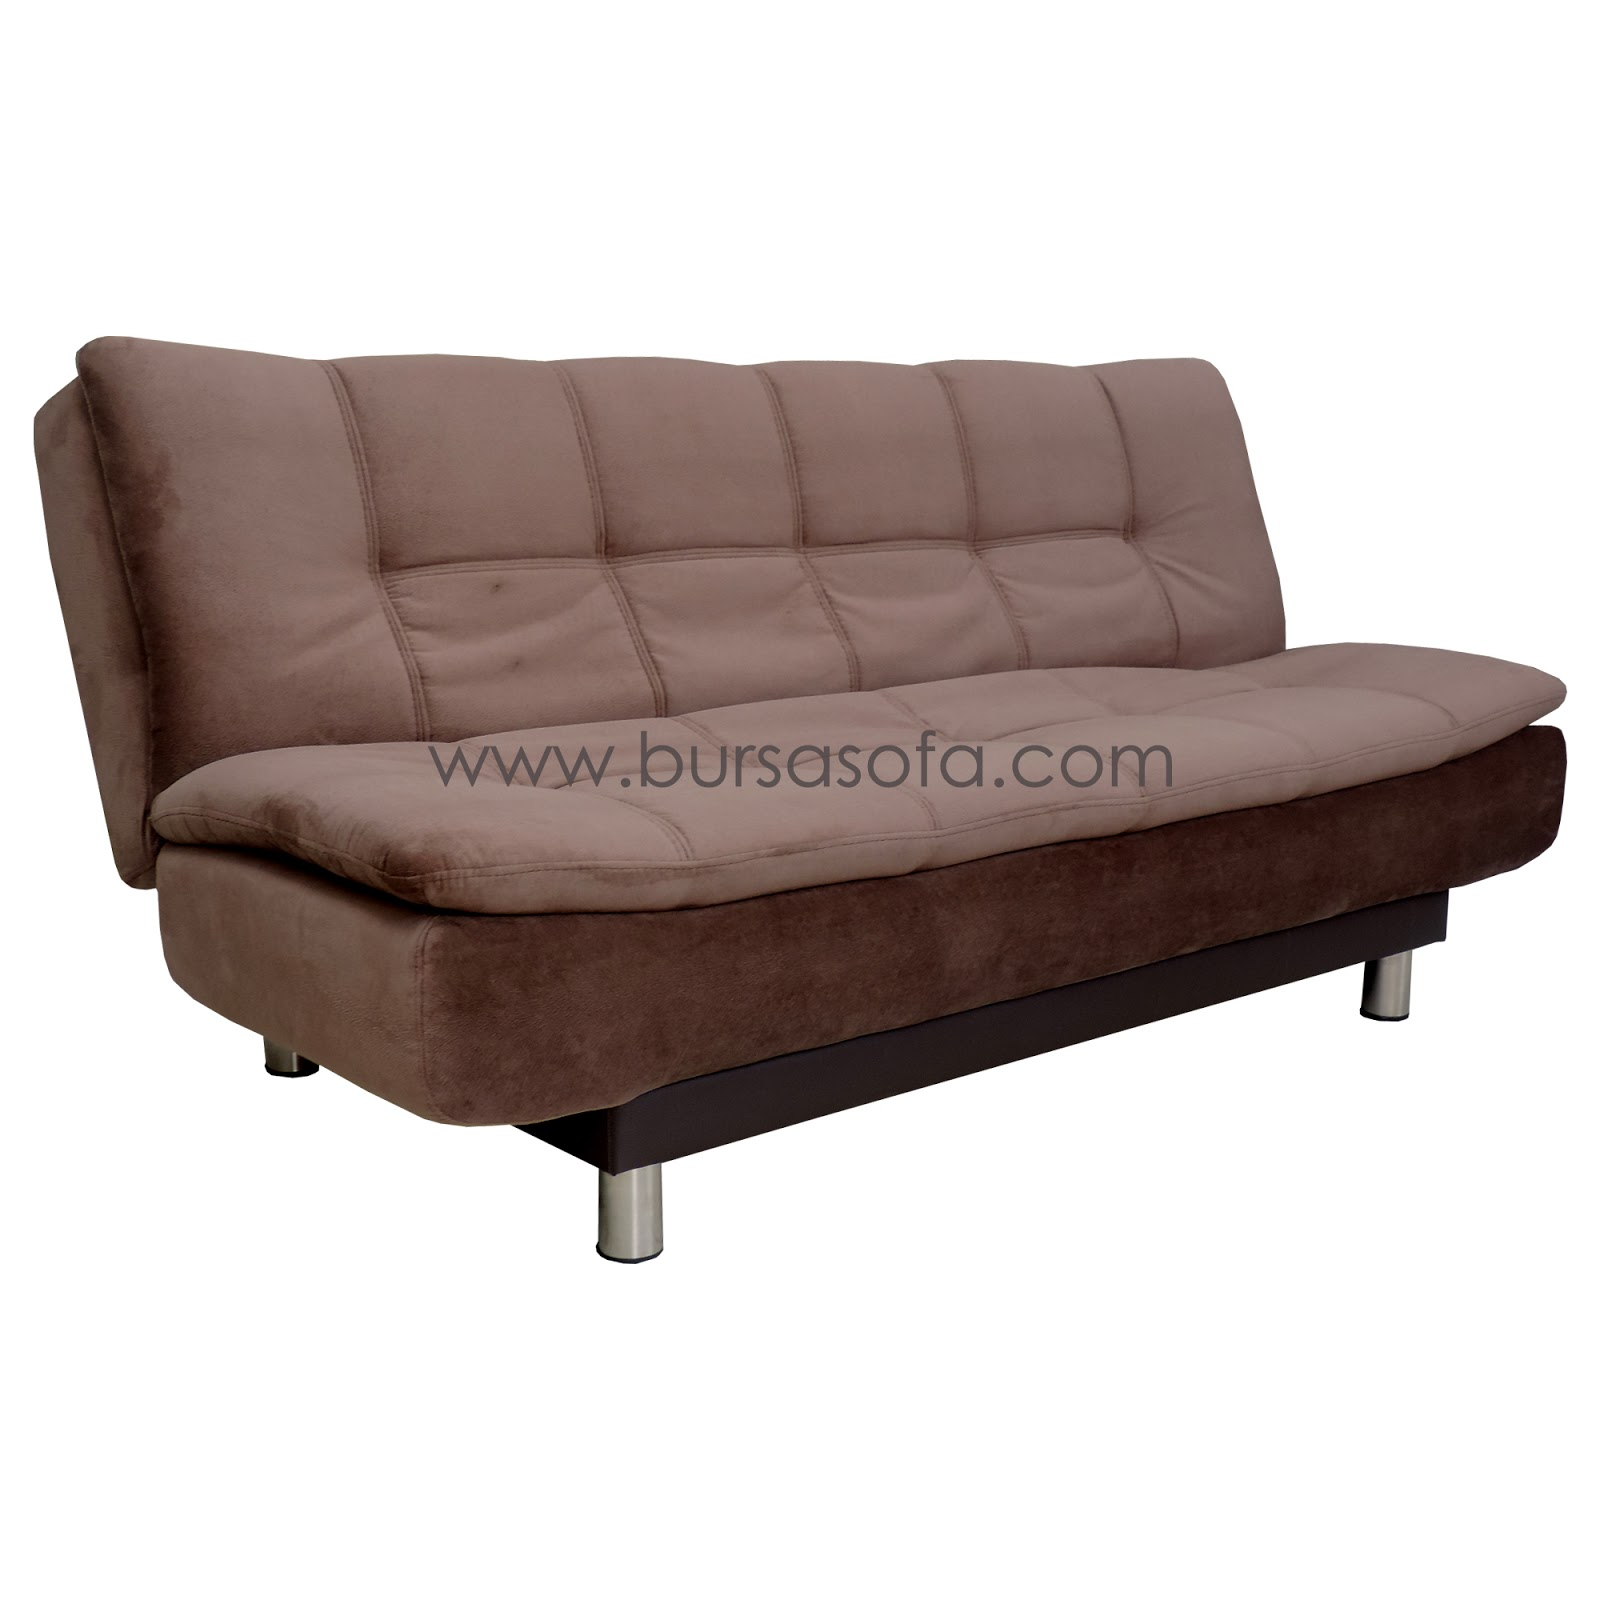 Sofa Bed Cheryl Brown BURSA SOFA